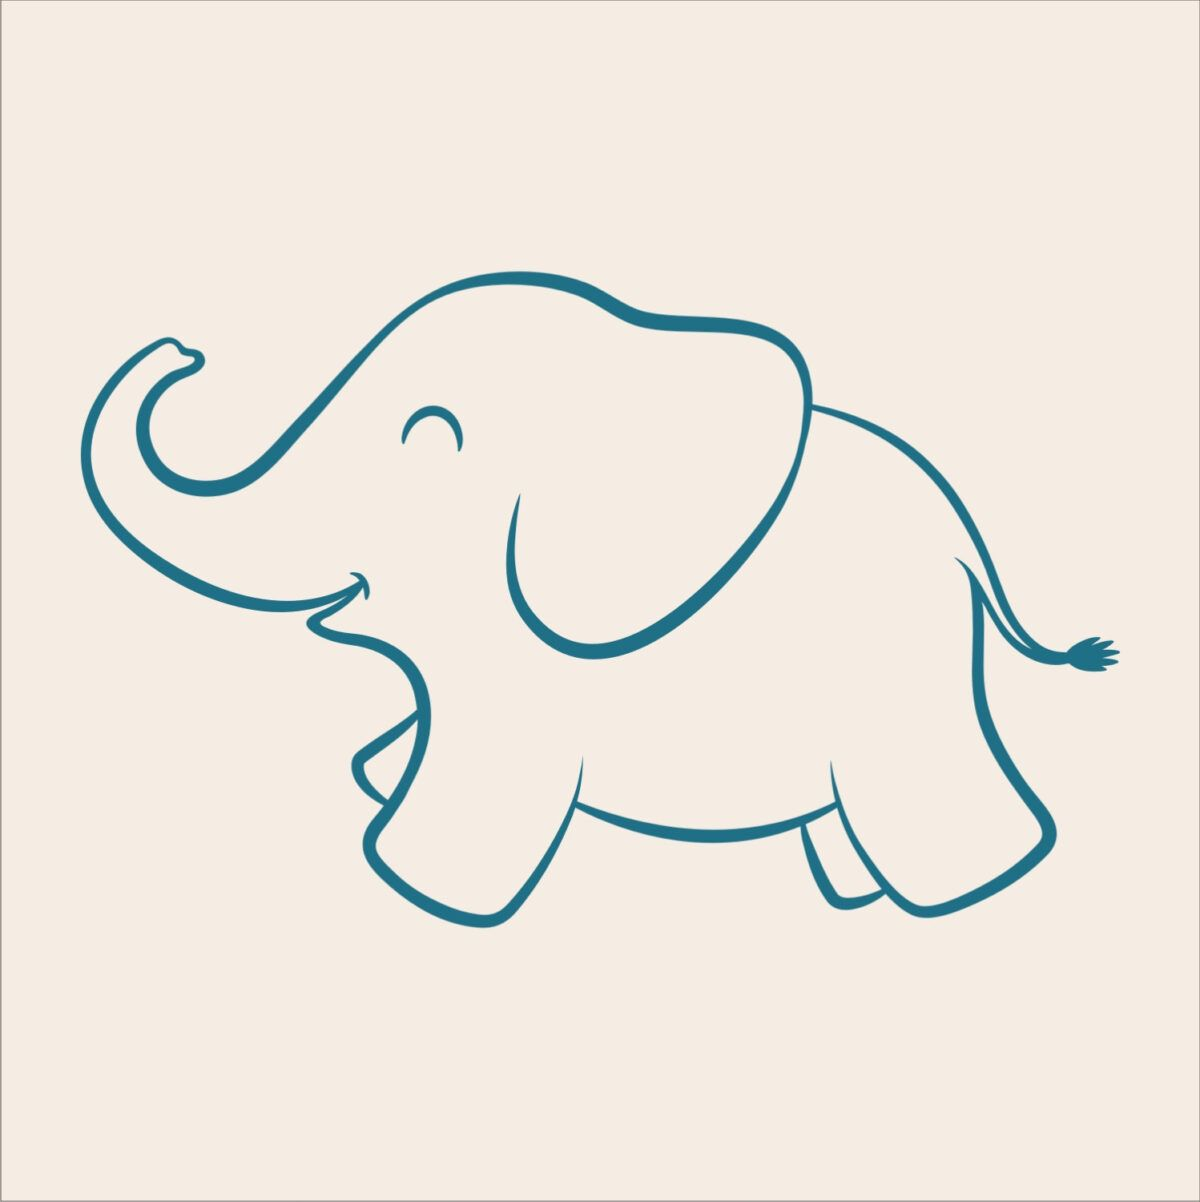 Free Baby Elephant Stencil Download Free Clip Art Free With Blank Elephant Template Elephant Outline Elephant Stencil Elephant Tattoo Small